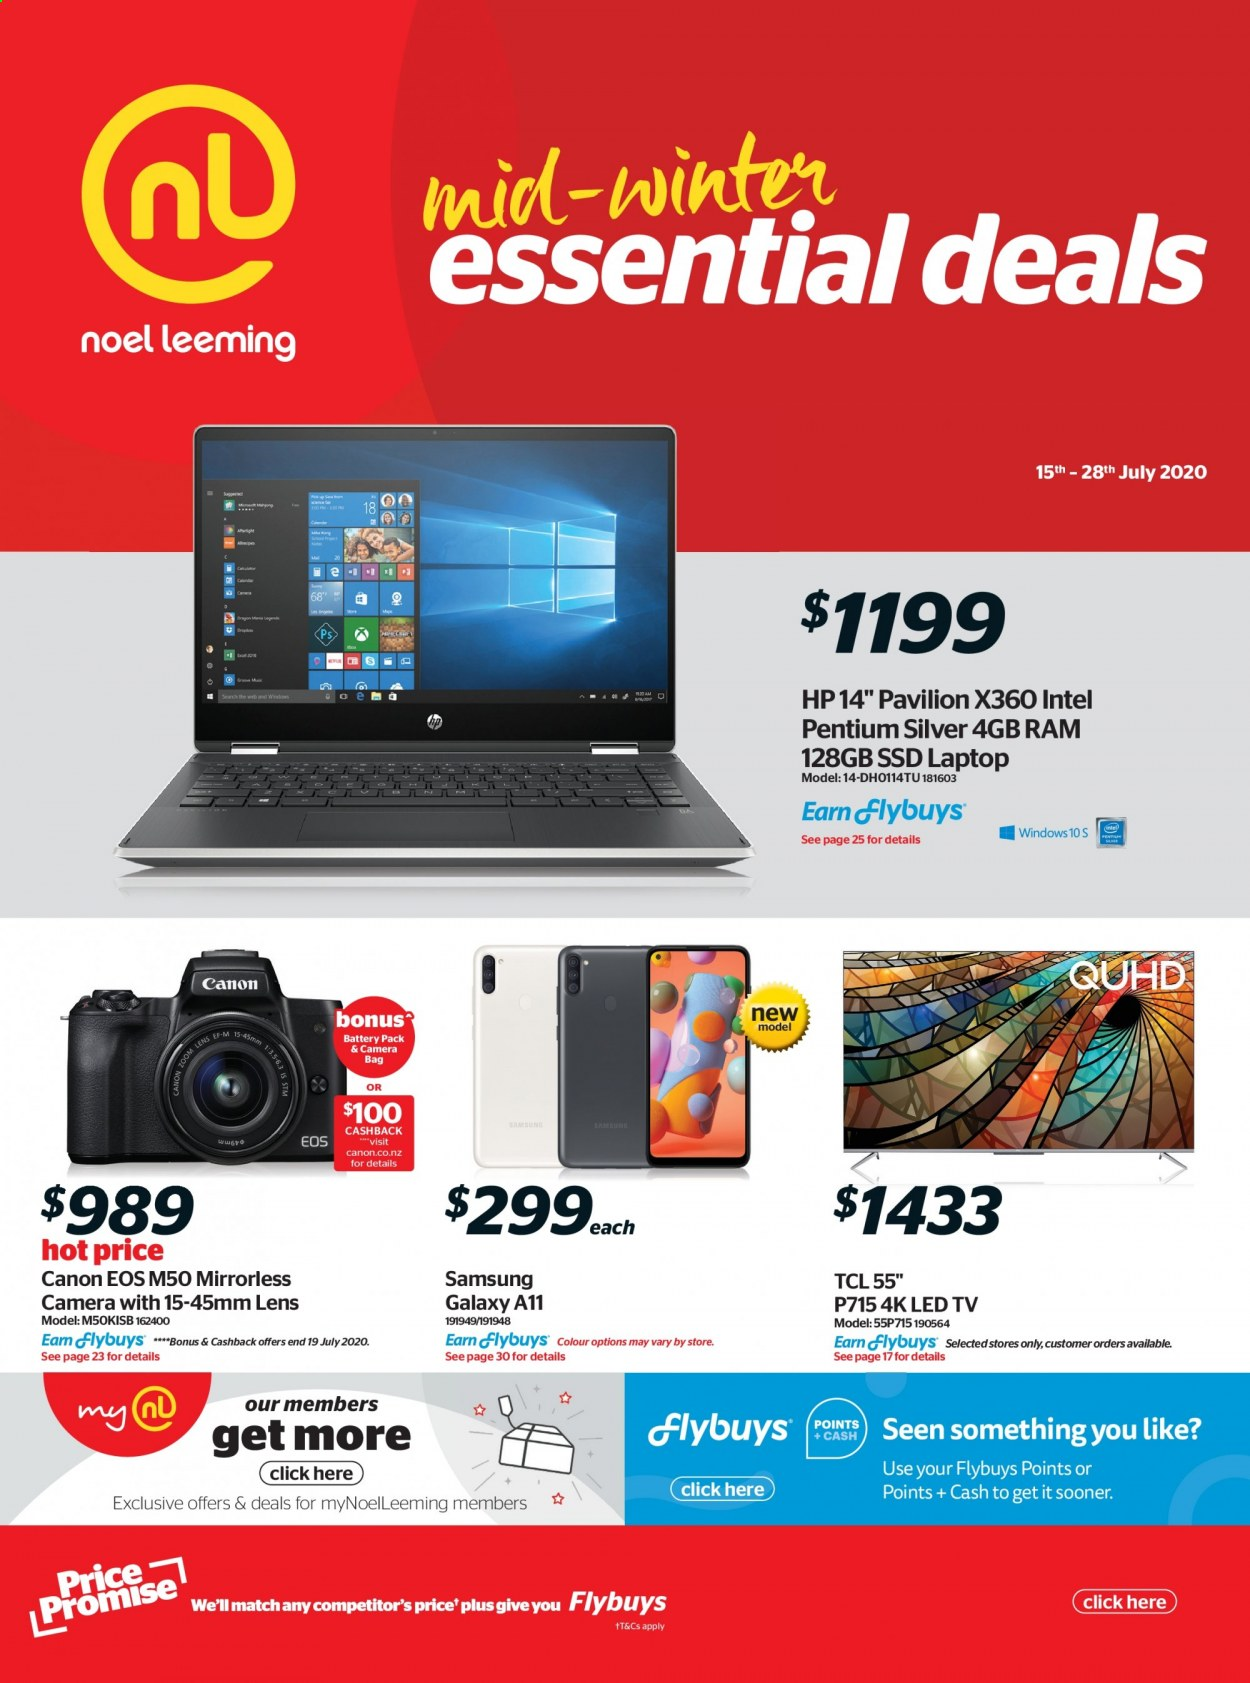 Noel Leeming mailer - 15.07.2020 - 28.07.2020 - Sales products - bag, battery, camera, canon, galaxy, laptop, led tv, lens, mirrorless camera, samsung, tcl, hp, intel, pentium, ssd, pavilion, galaxy a, samsung galaxy. Page 1.